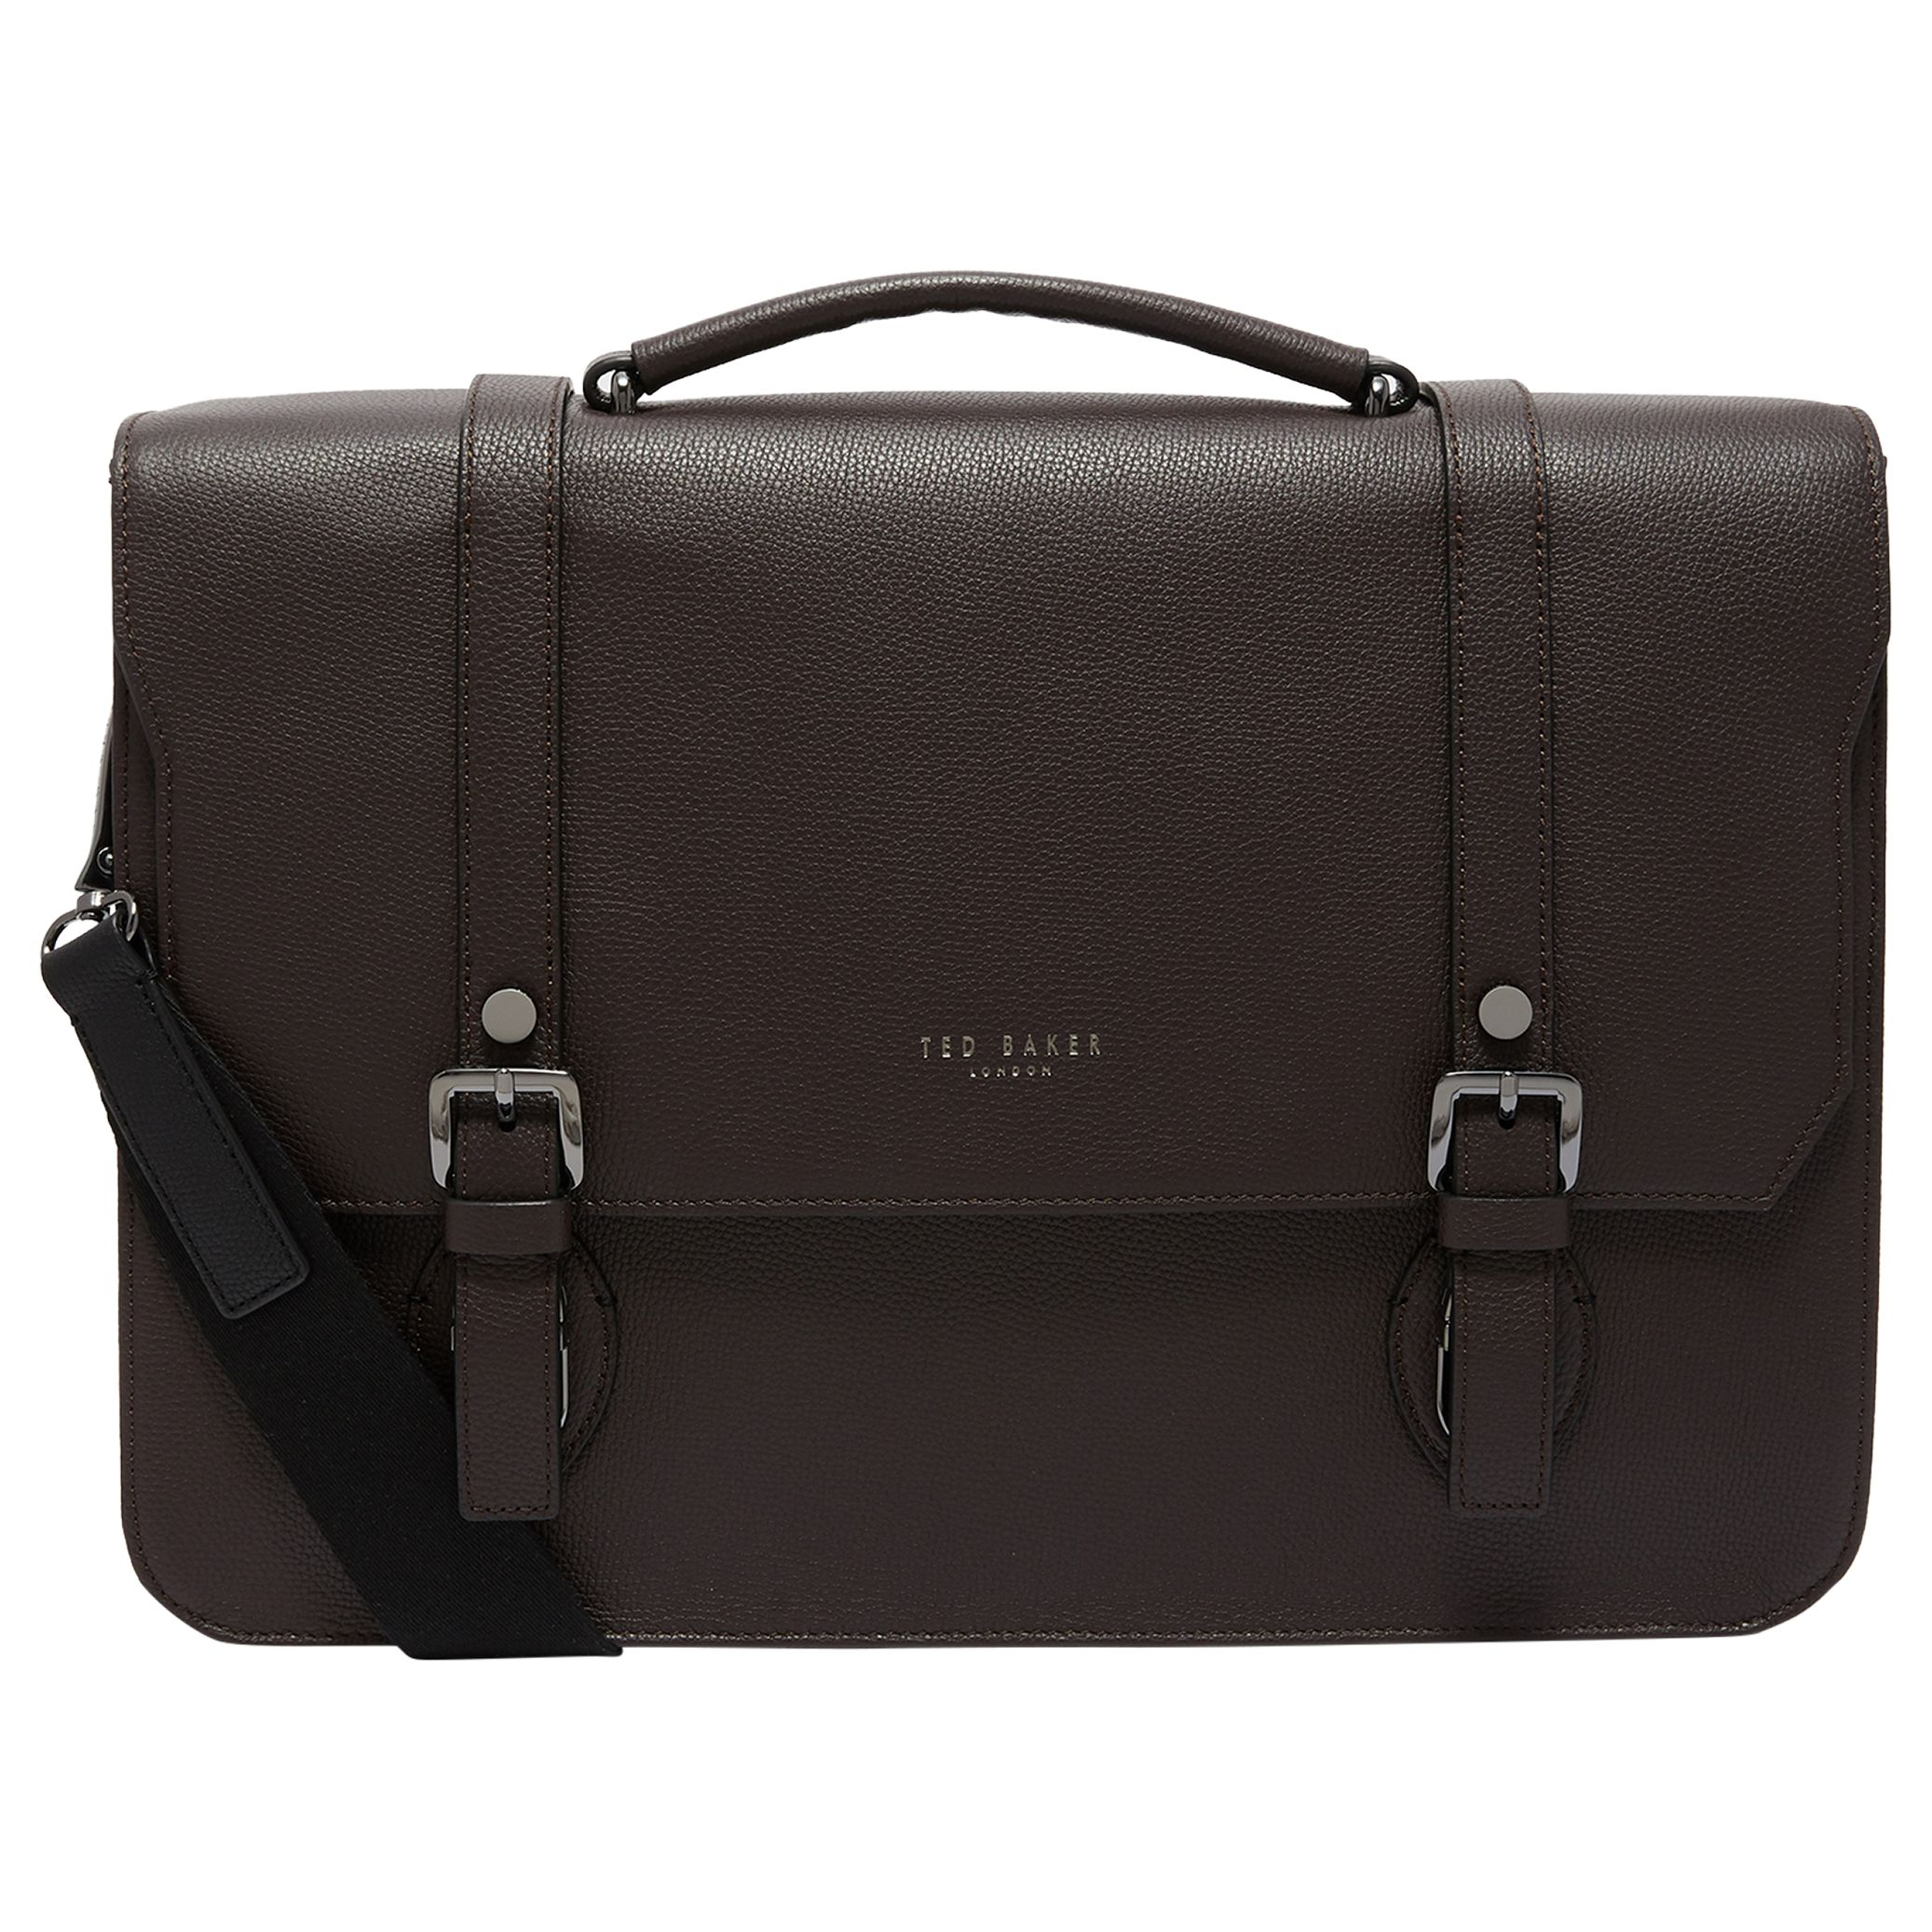 db2207f9e3b Ted Baker Nevadaa Leather Satchel, Chocolate at John Lewis & Partners